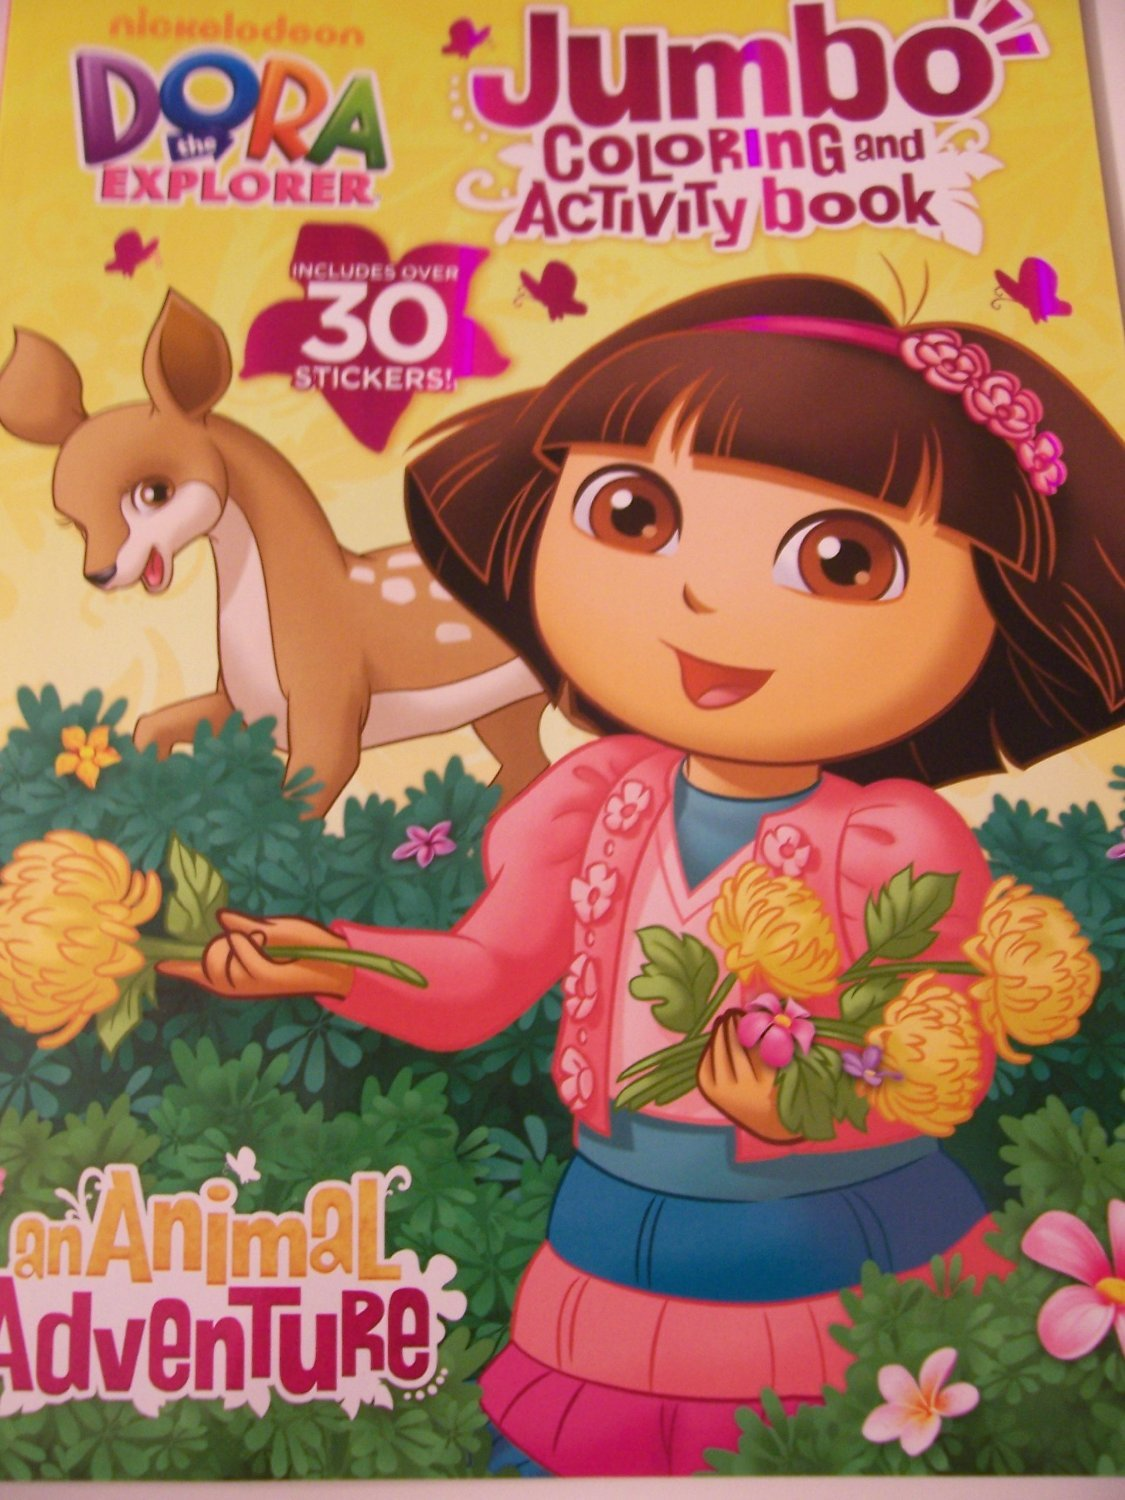 dora the explorer jumbo coloring activity book with over 30 stickers an animal adventure - Jumbo Coloring Book